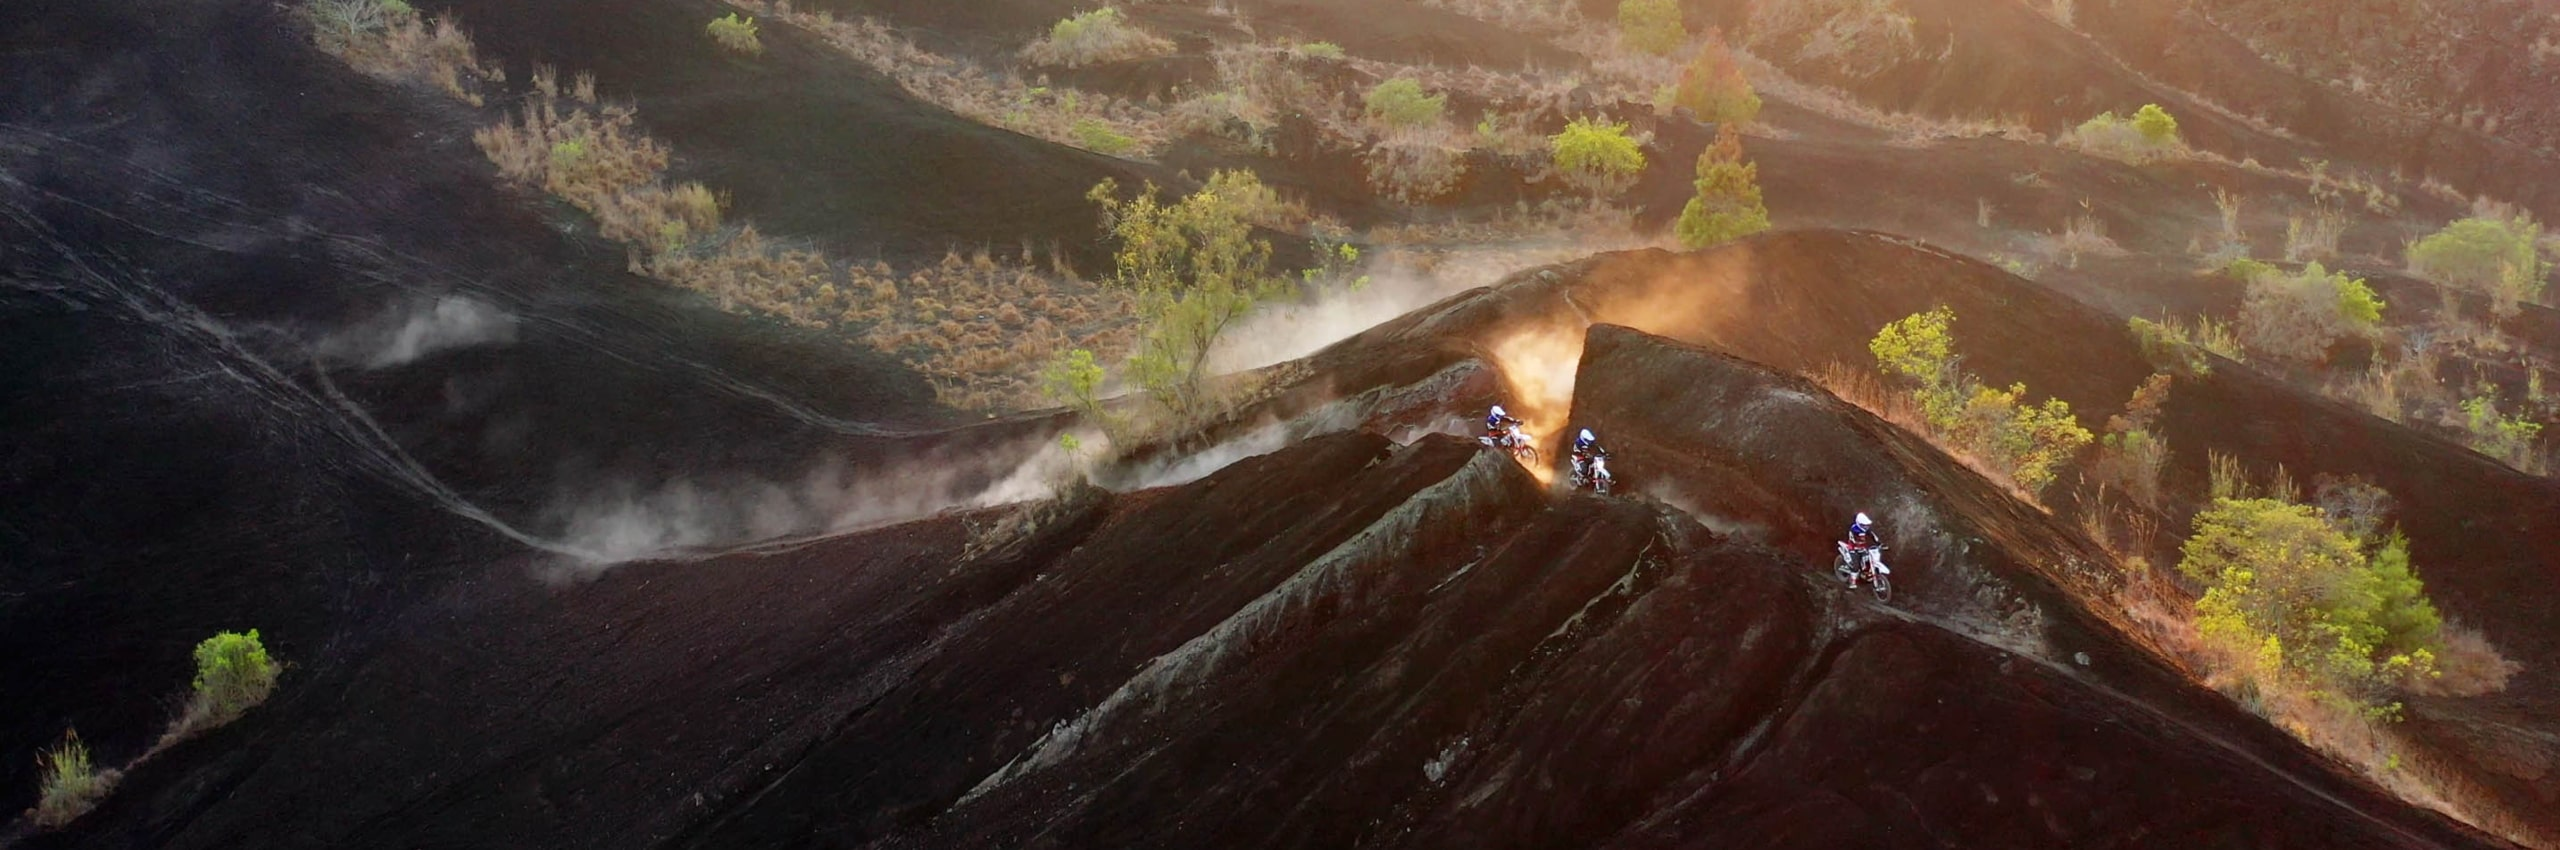 Bali_Dirt_Bikes_Kintamani_Black_Lava_Slider2